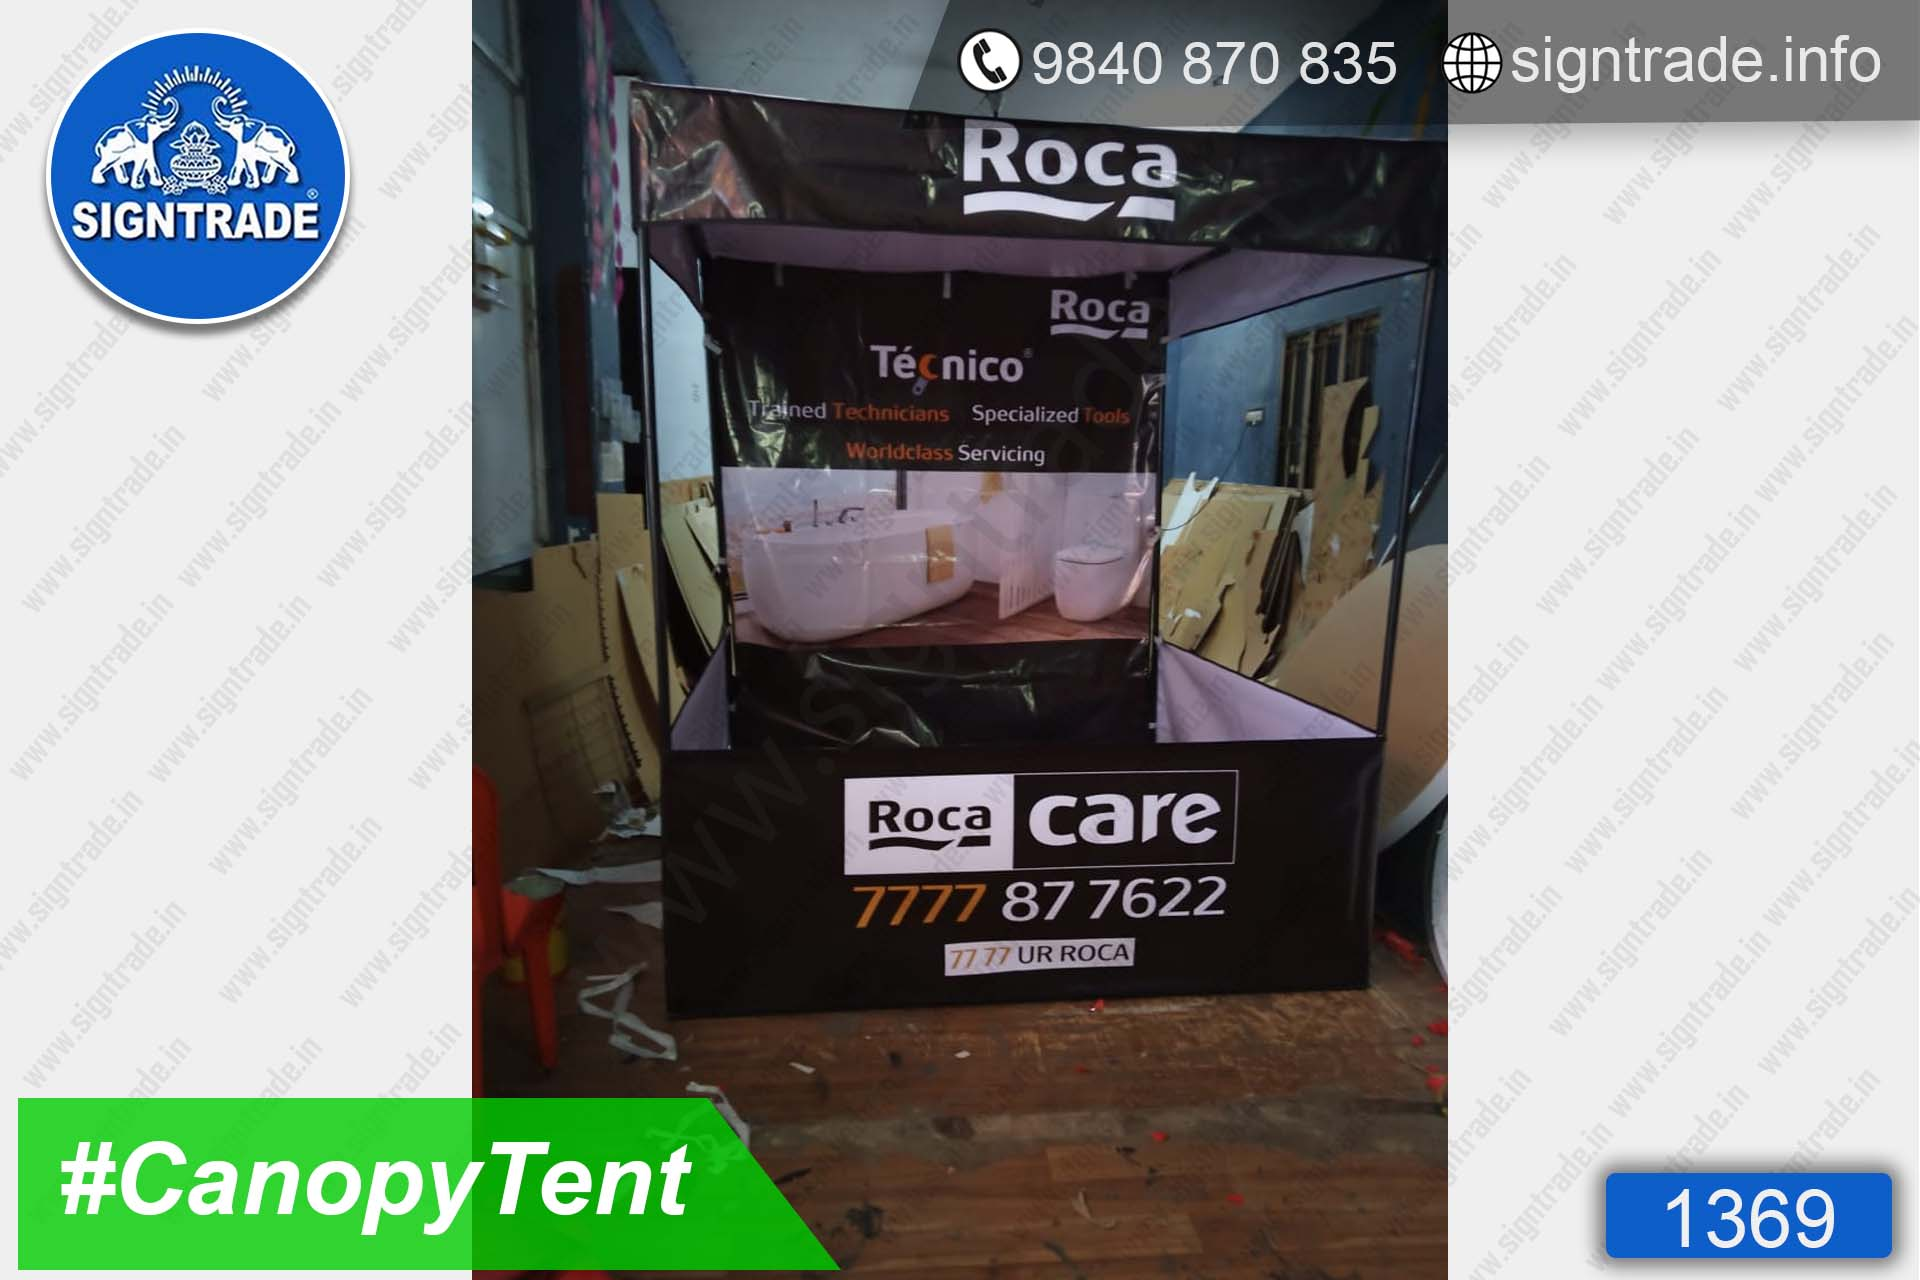 Roca Care - 1369, Canopy tent, Flat roof tent, Promo tent, Promotional tent, Advertising tent, Promo Flag